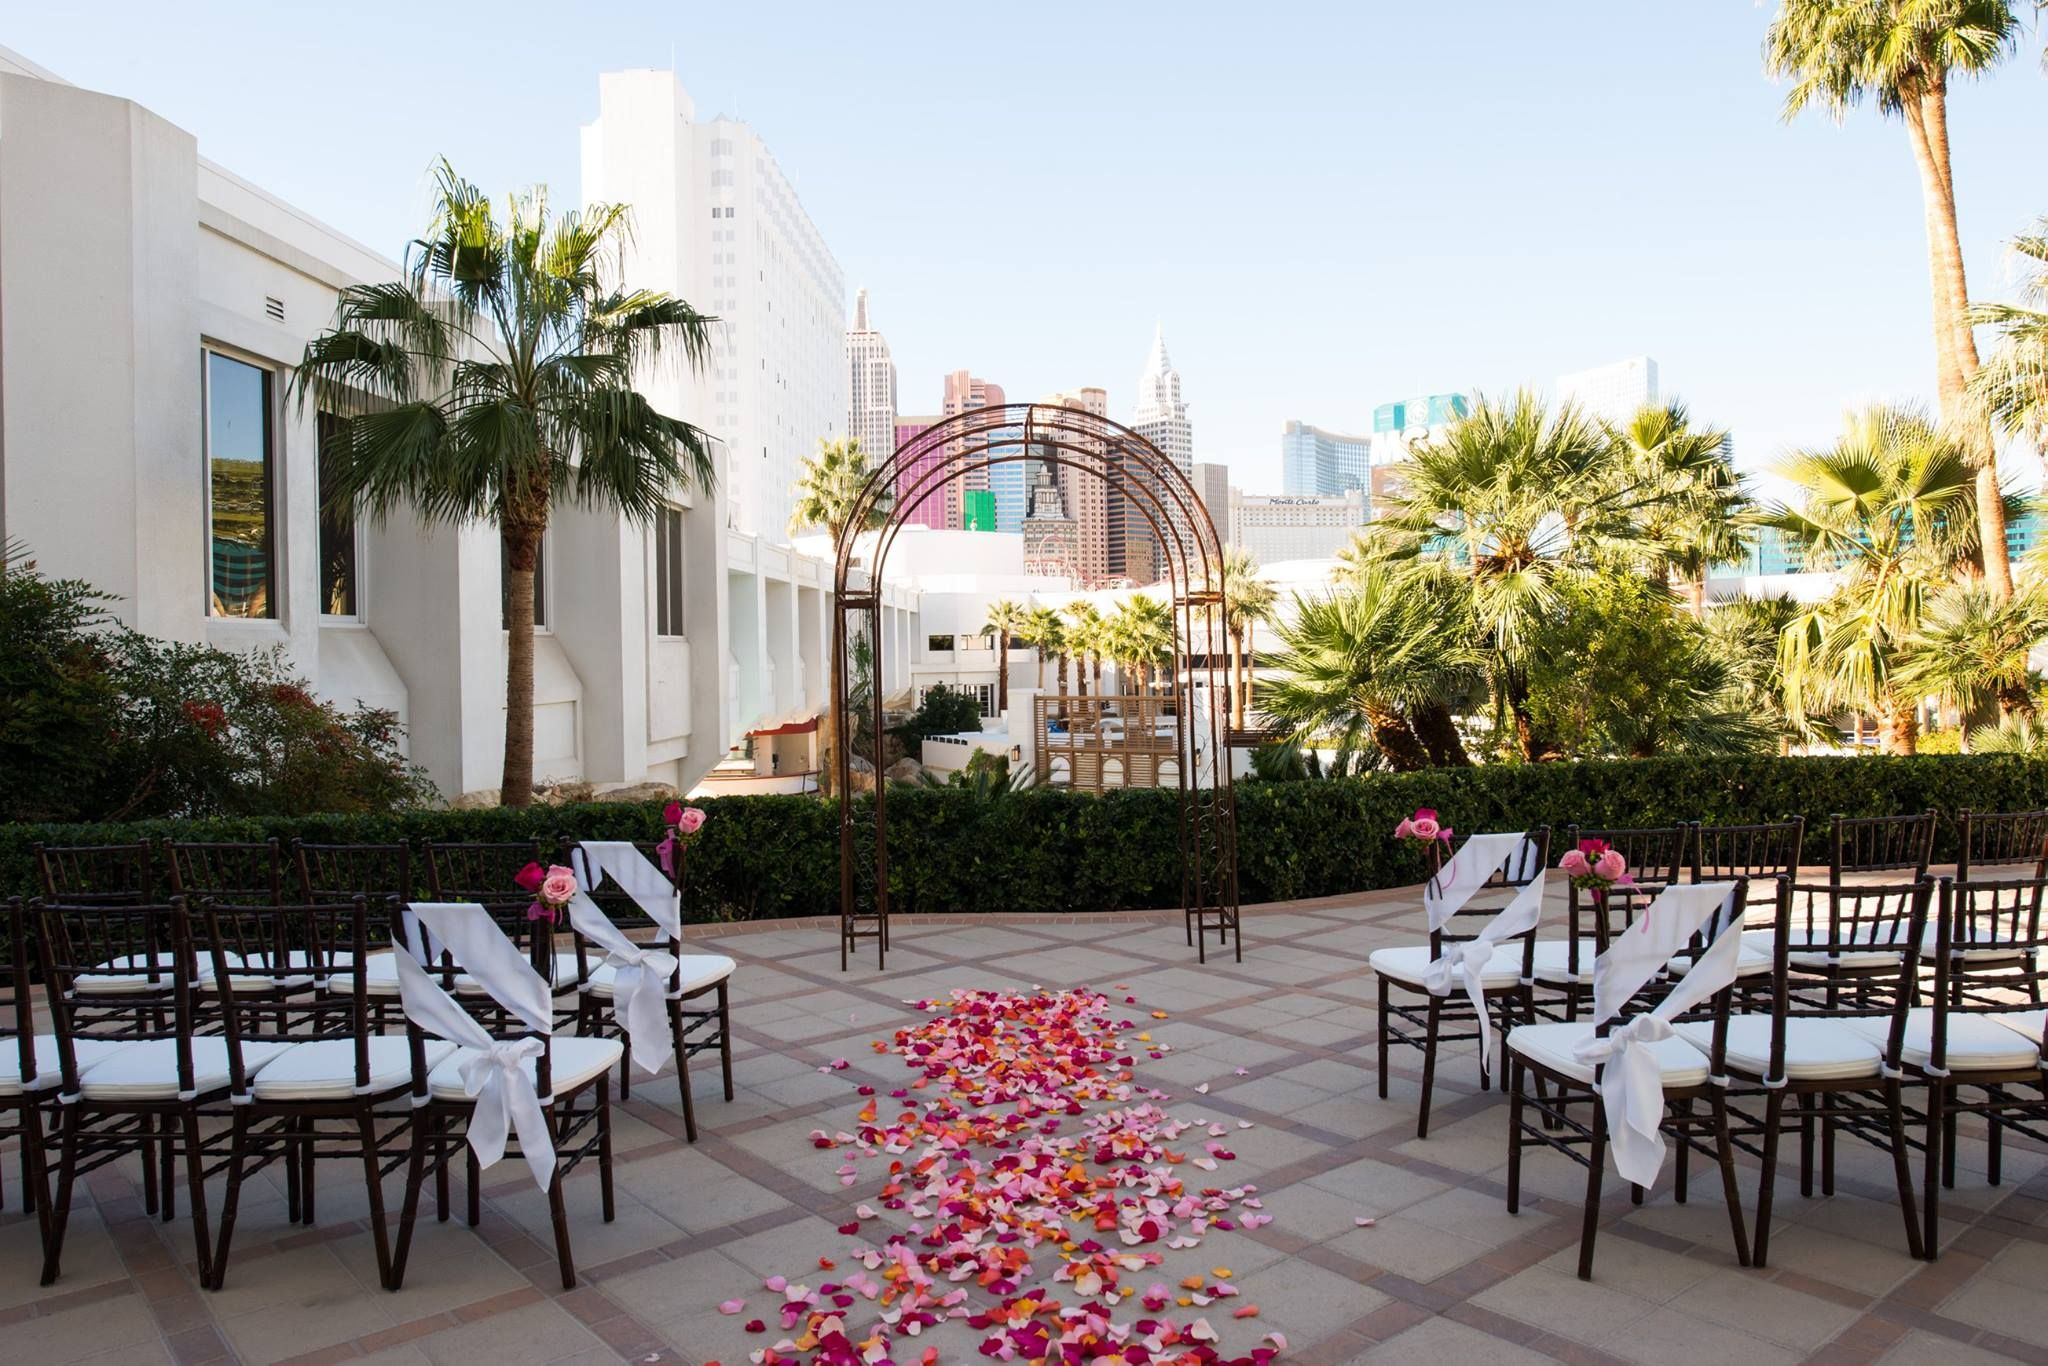 Tropicana Lv Weddings Terrace Las Vegas Wedding Chapel Tropical Chapels